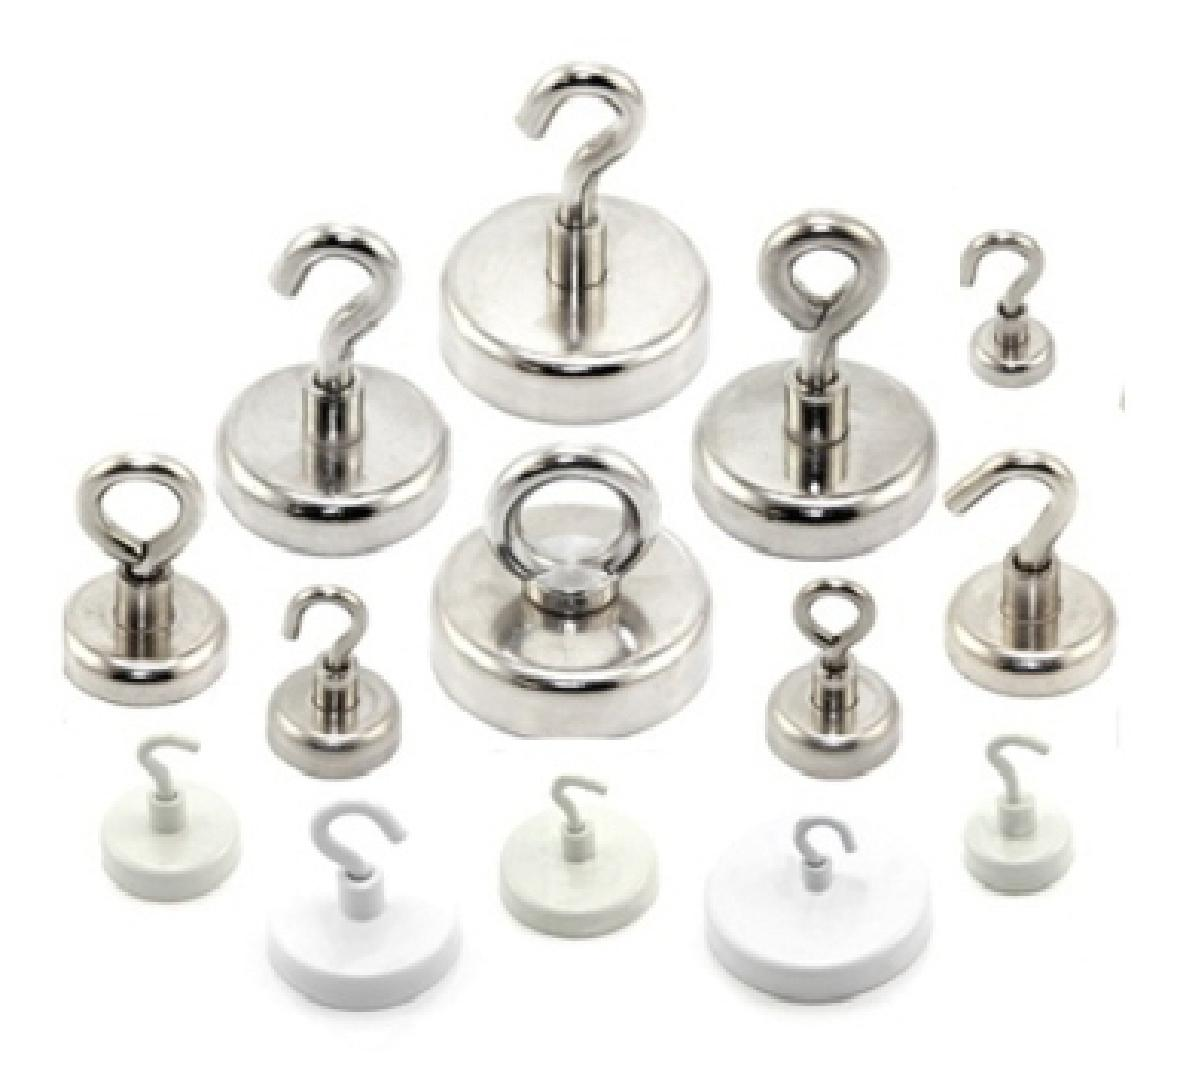 Neodymium Pot Magnets for Hooks or Eyelets holds 160kg